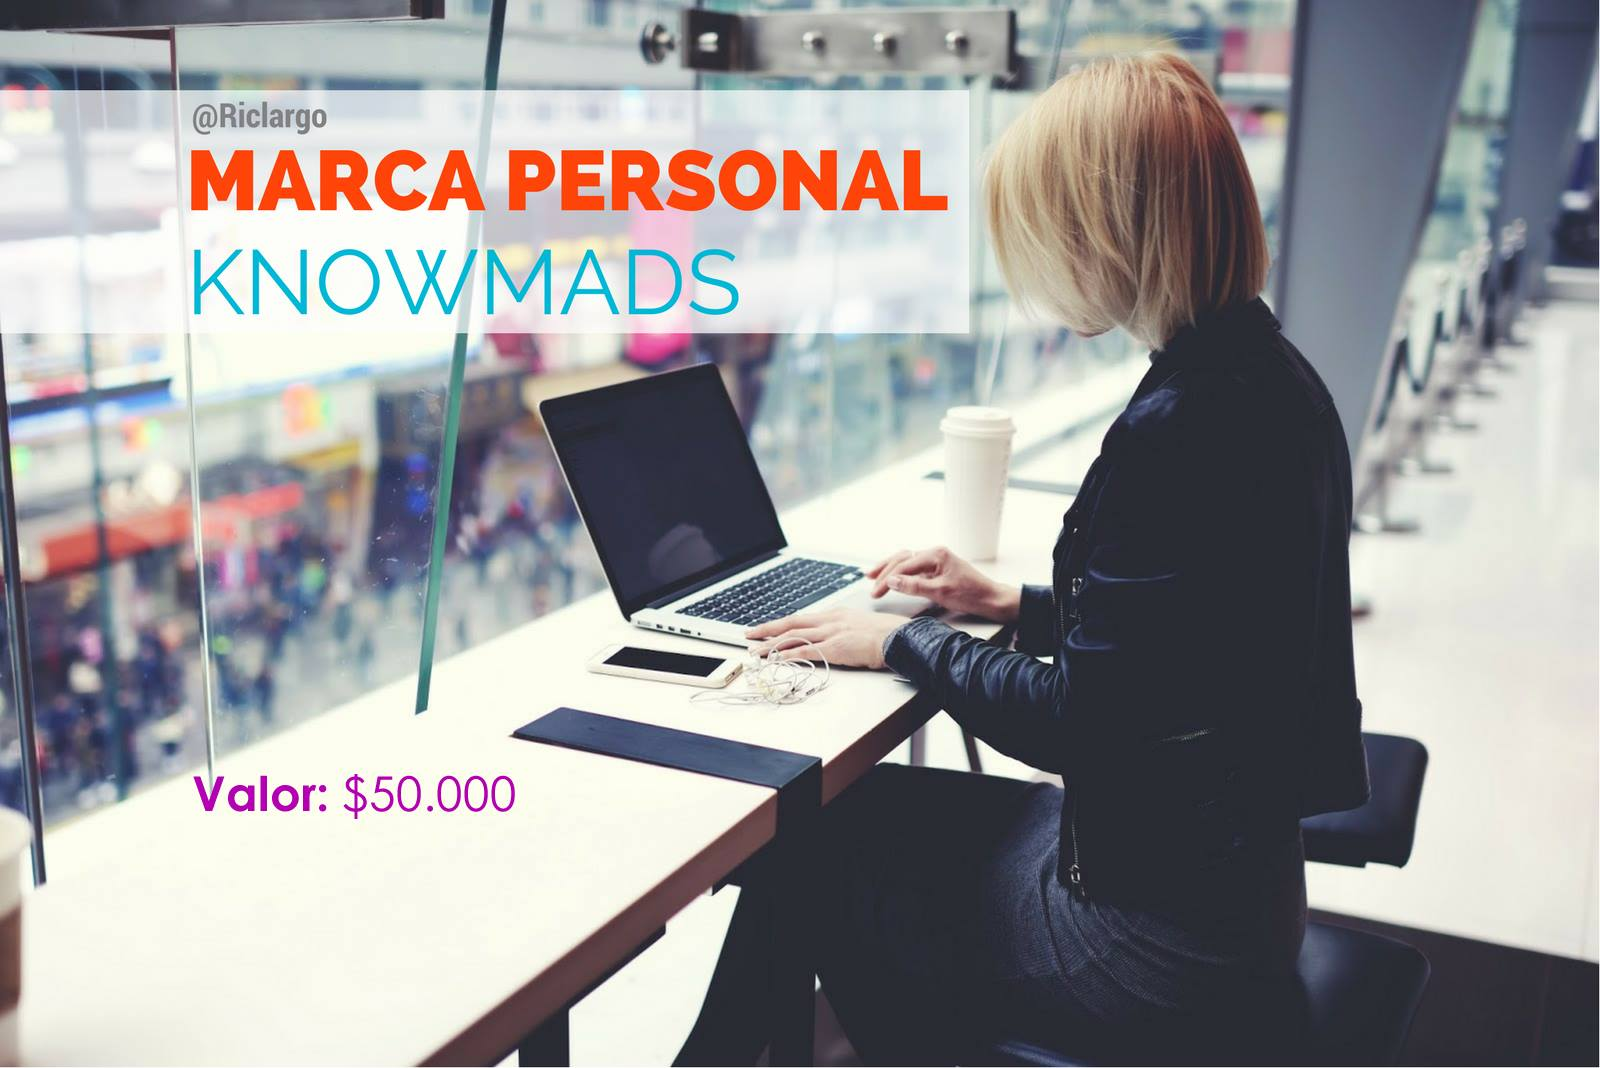 marca-personal-knowmad-riclargo